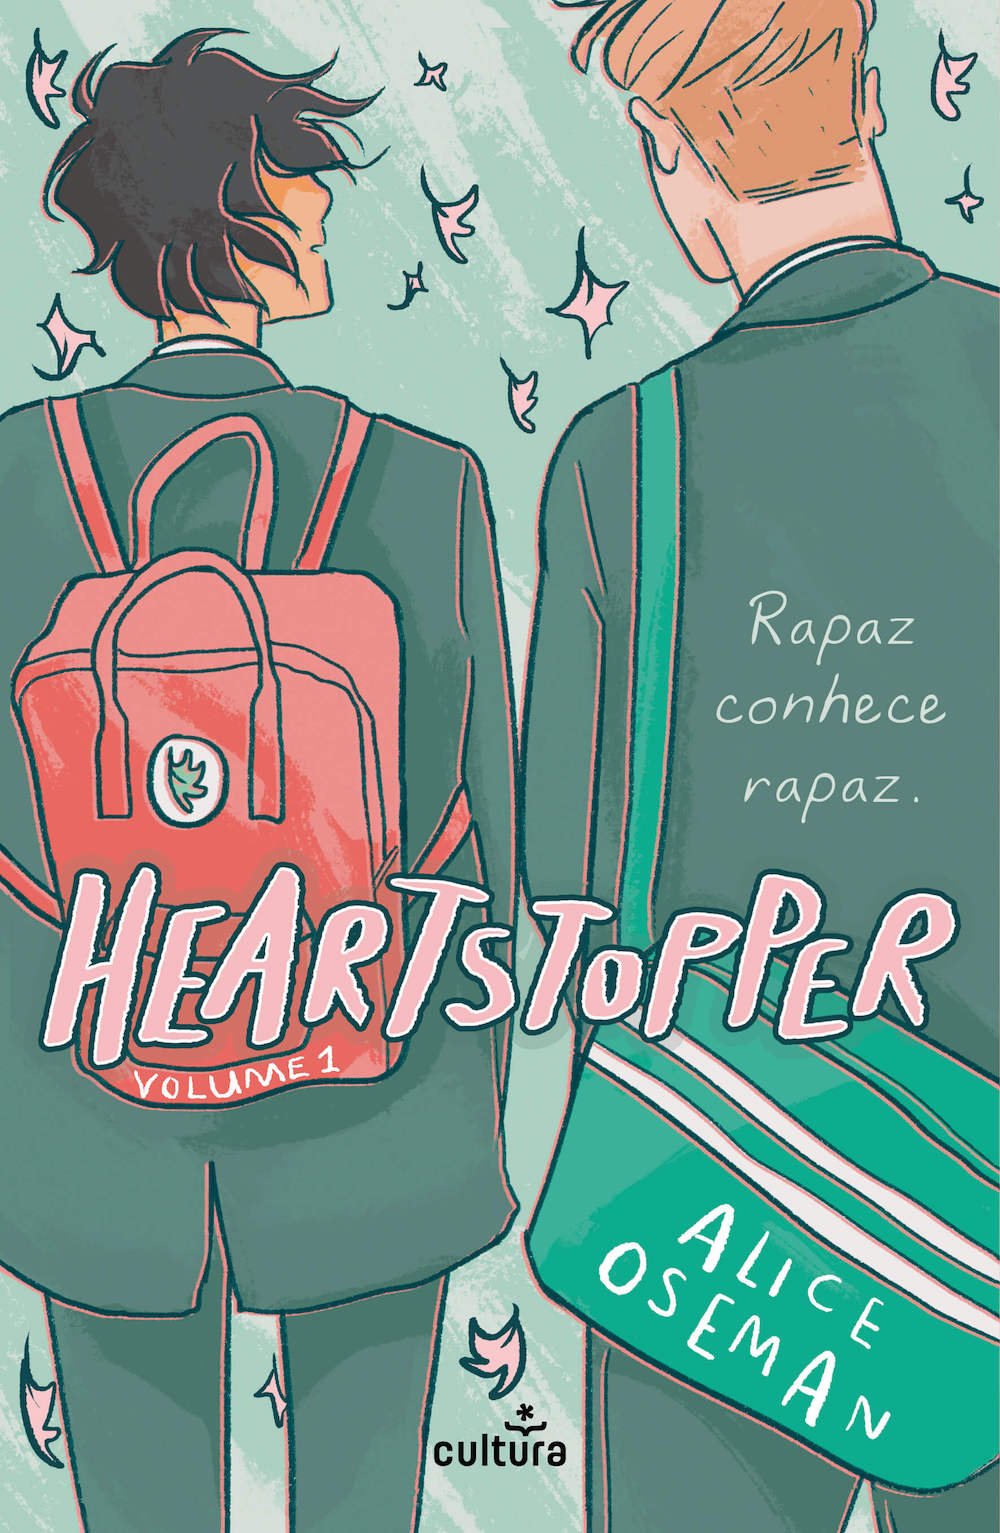 Heartstopper: Volume 1